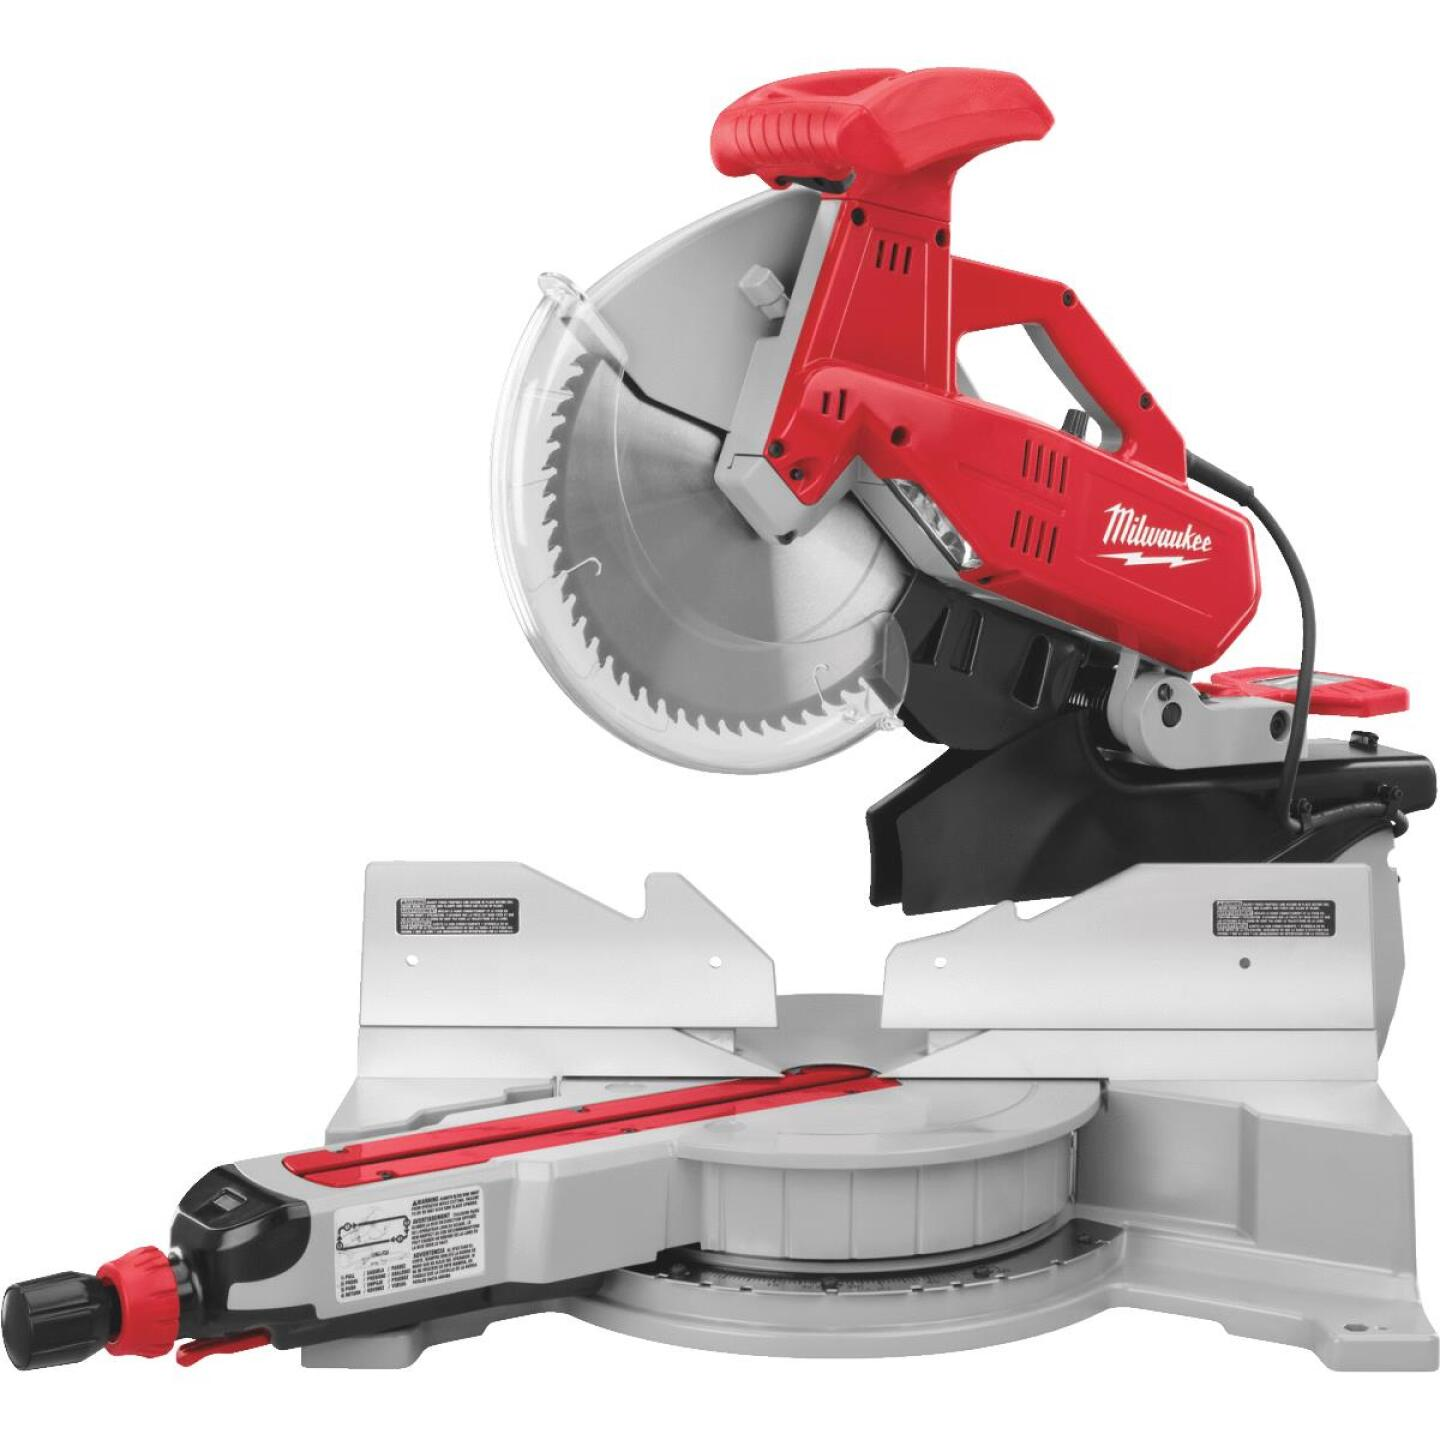 Milwaukee 12 In. 15-Amp Dual-Bevel Sliding Compound Miter Saw Image 1